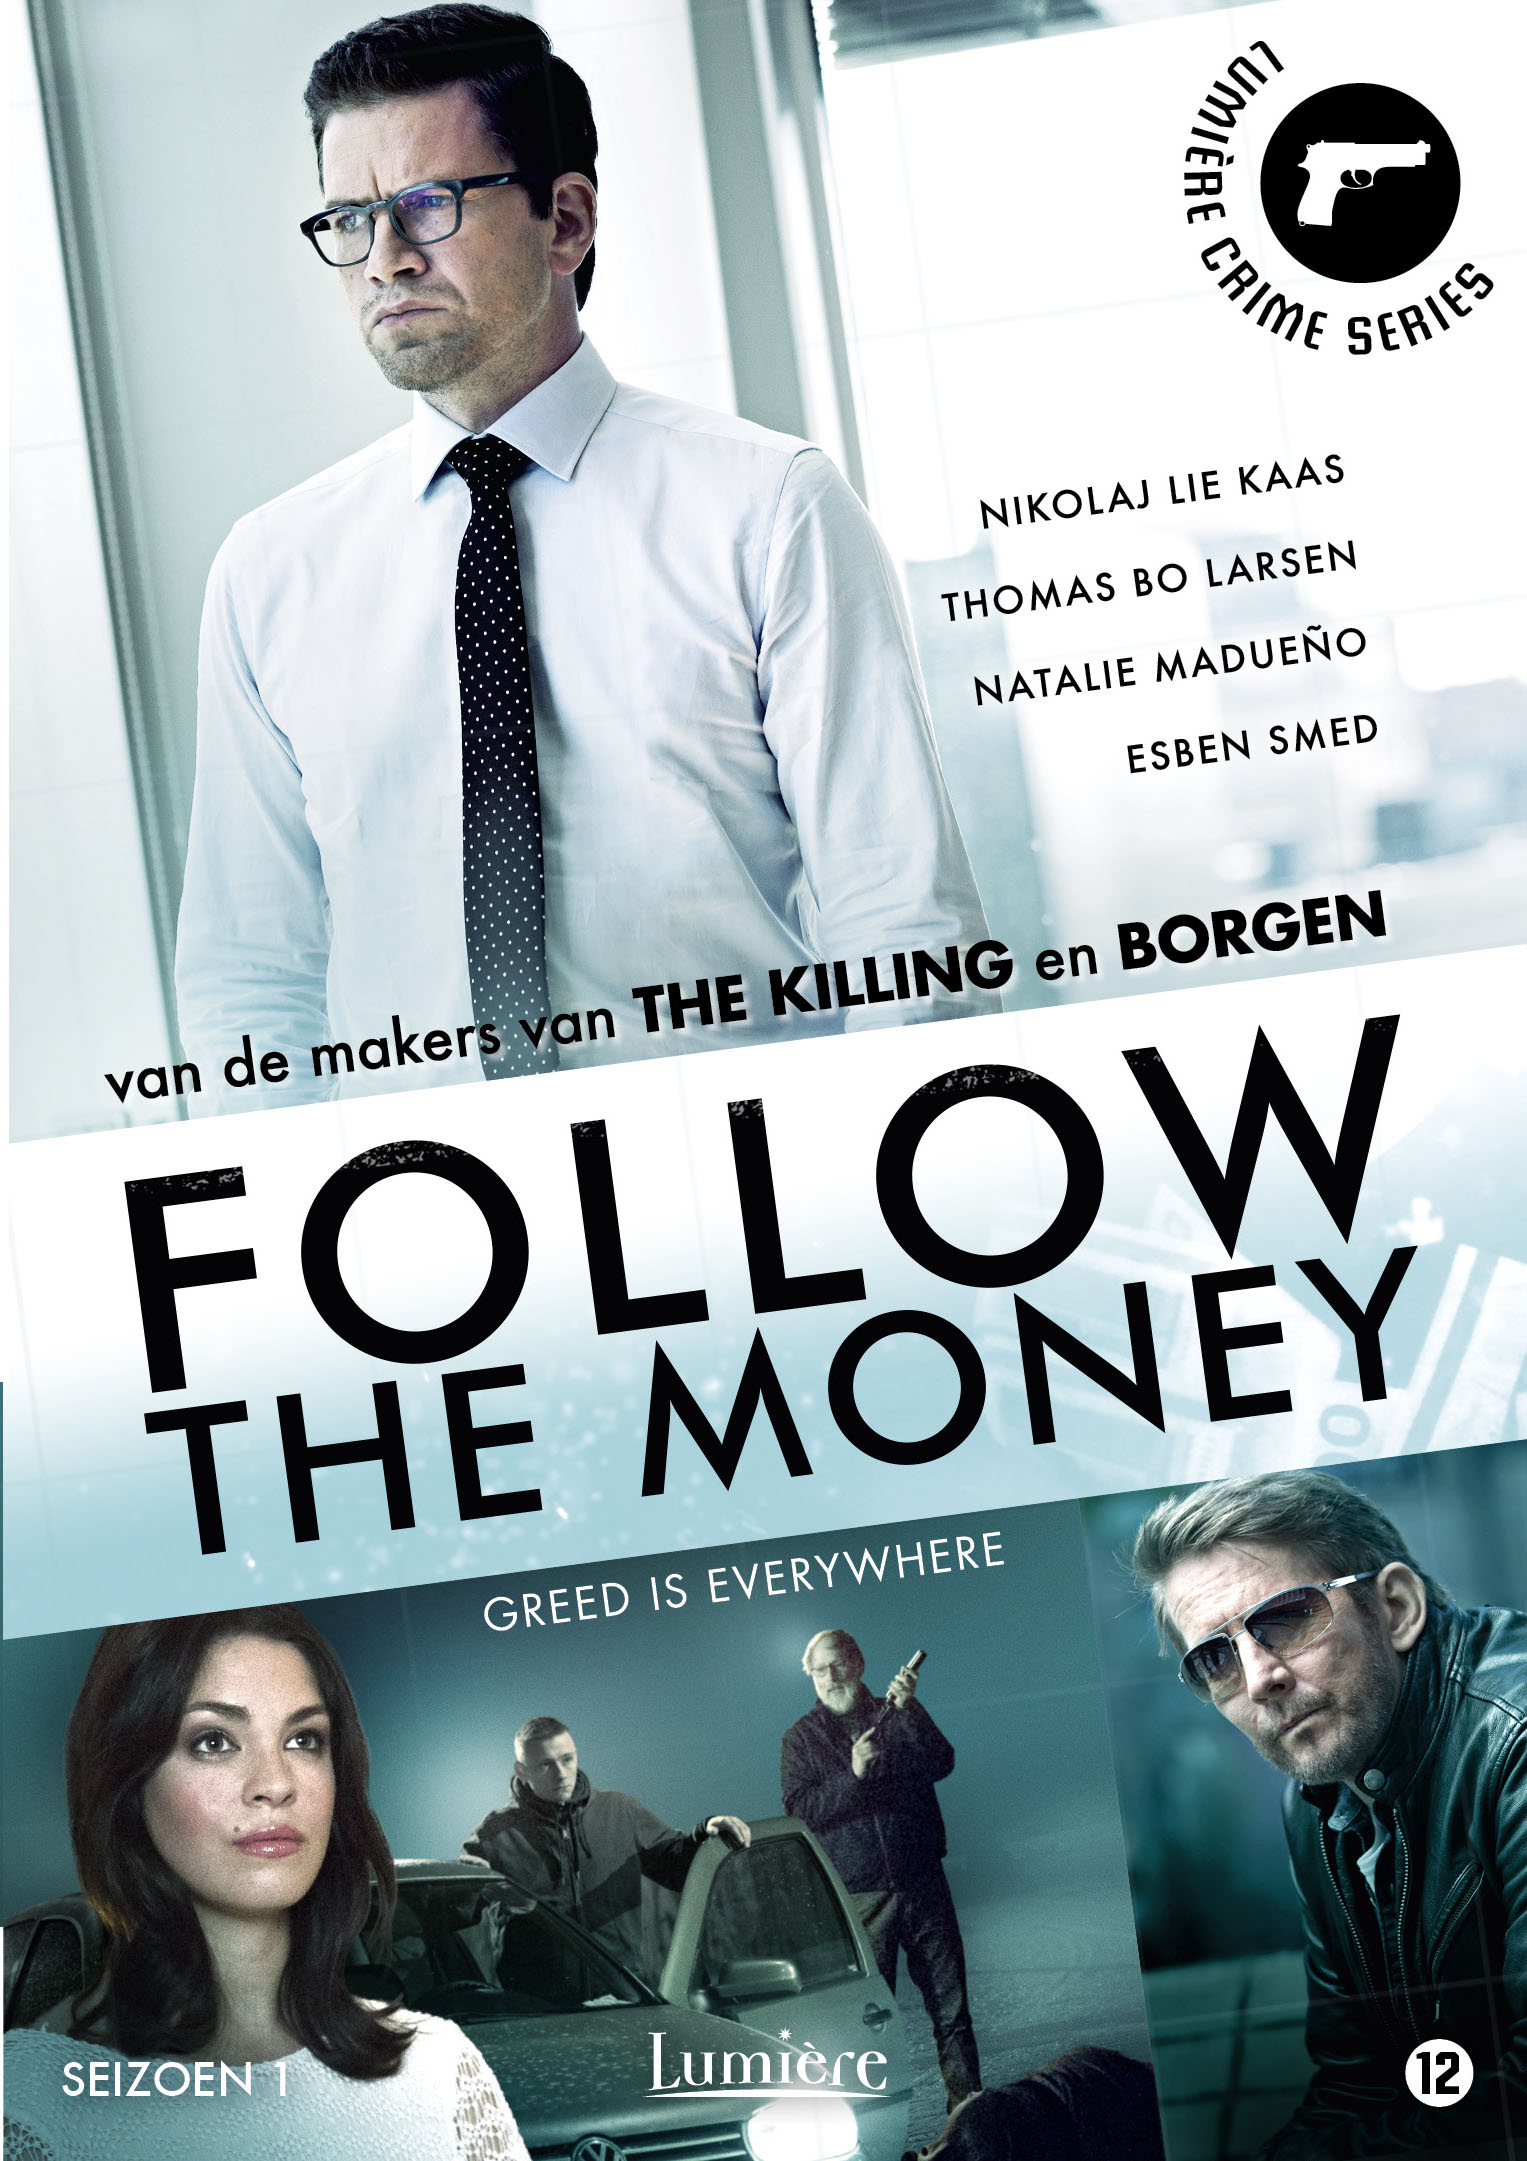 Capitulos de: Bedrag (Follow the Money)